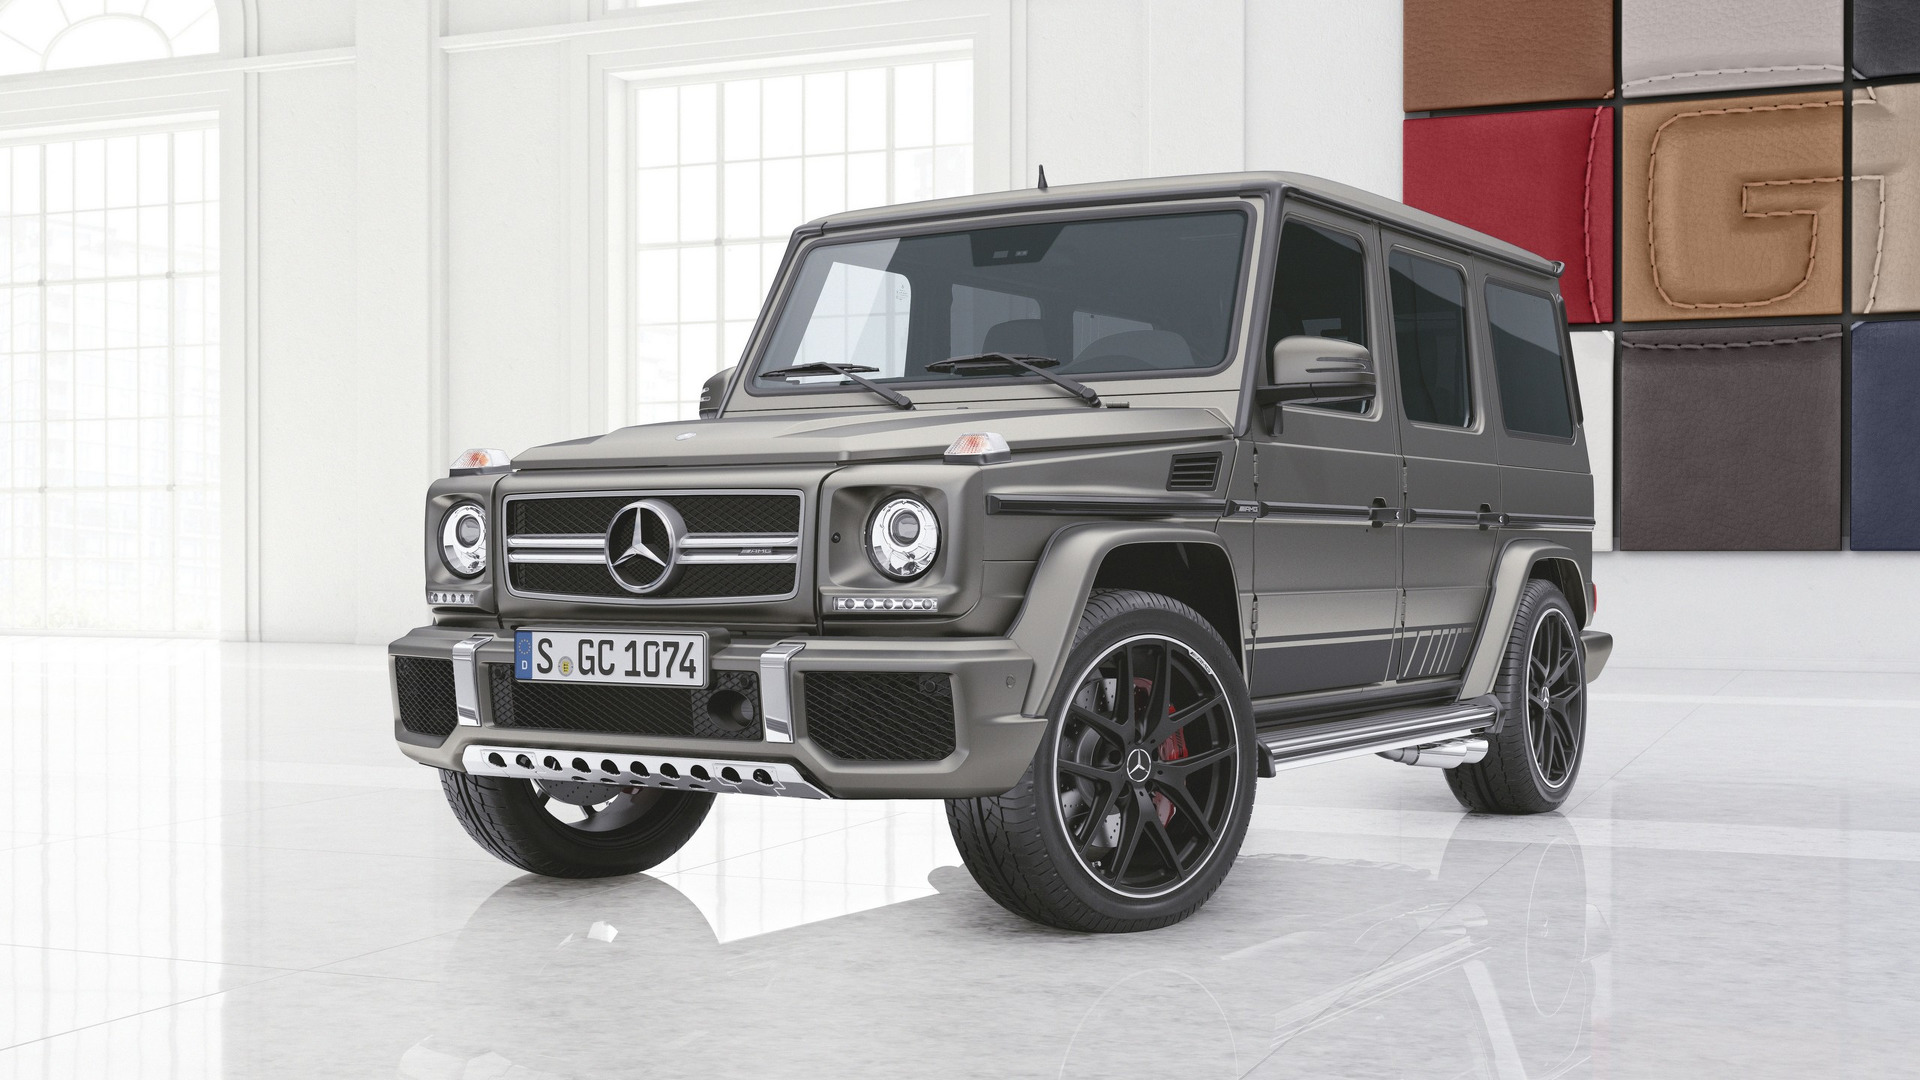 Mercedes Amg G65 Exclusive Edition Announced For 314 100